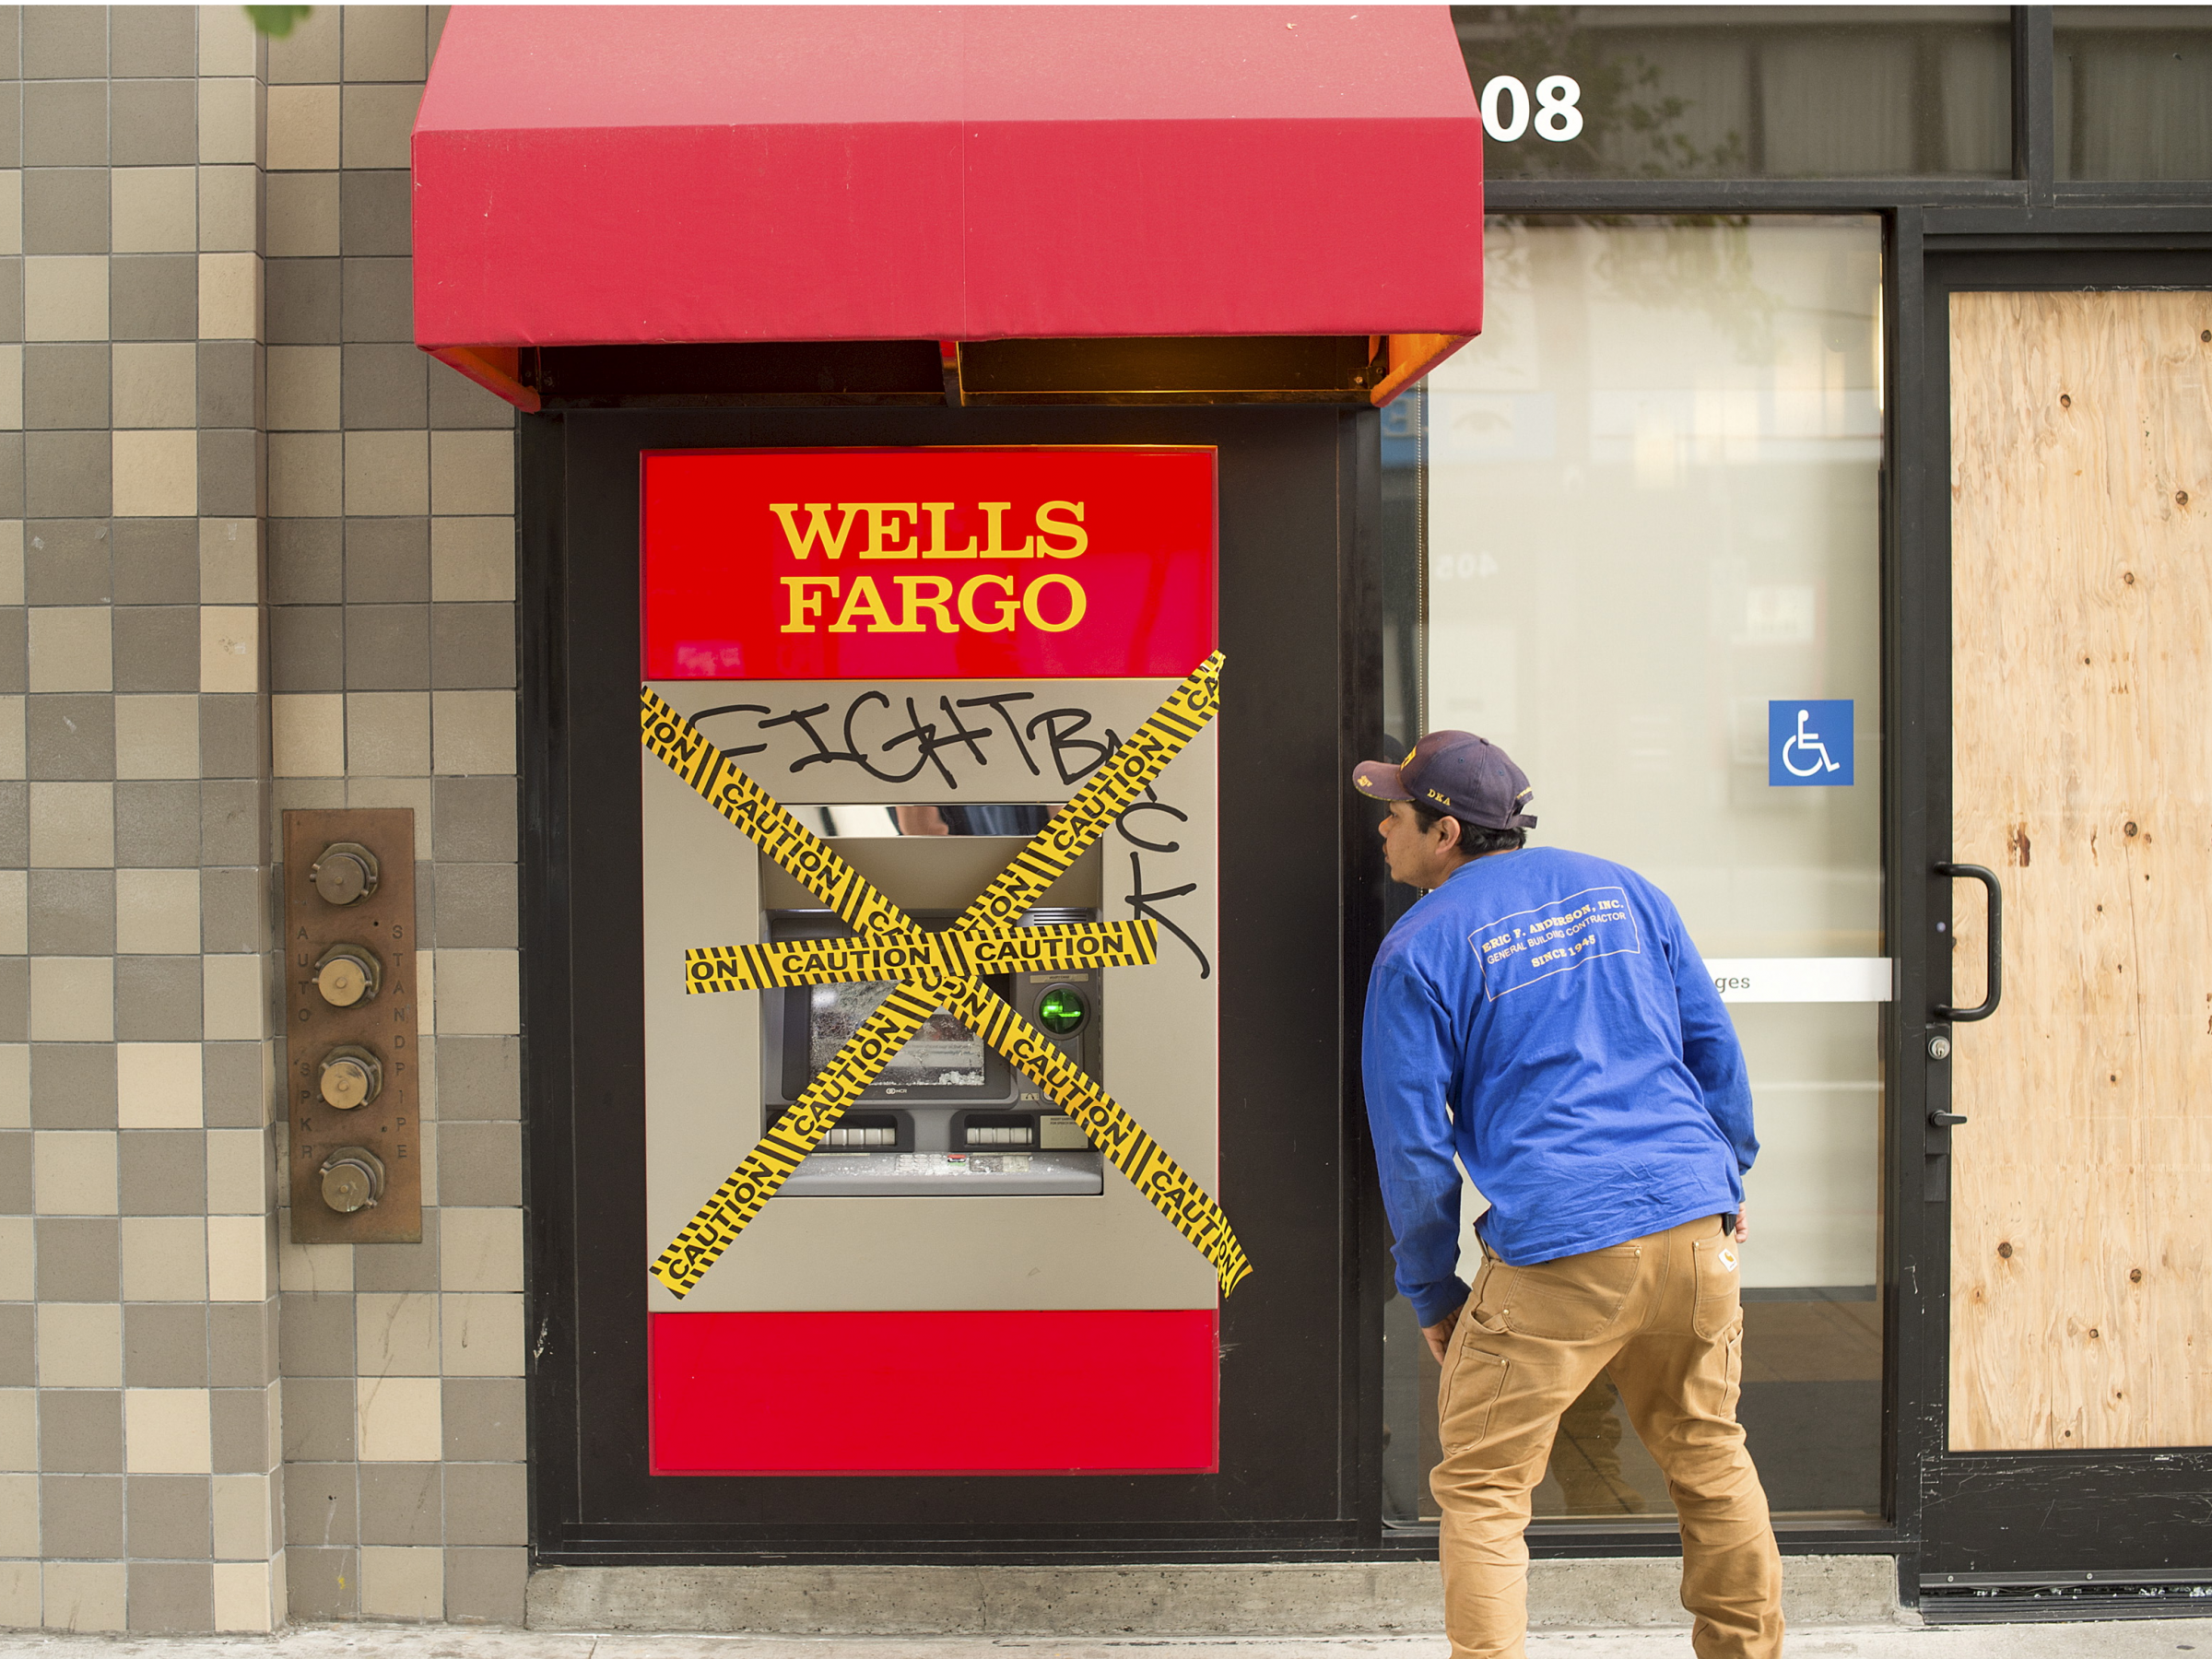 The Fbi Is Reportedly Quietly Warning Banks Of A Potential Large Scale Hacking Scheme That Could Hit Their Atms Accounting Wellness Swiss Bank